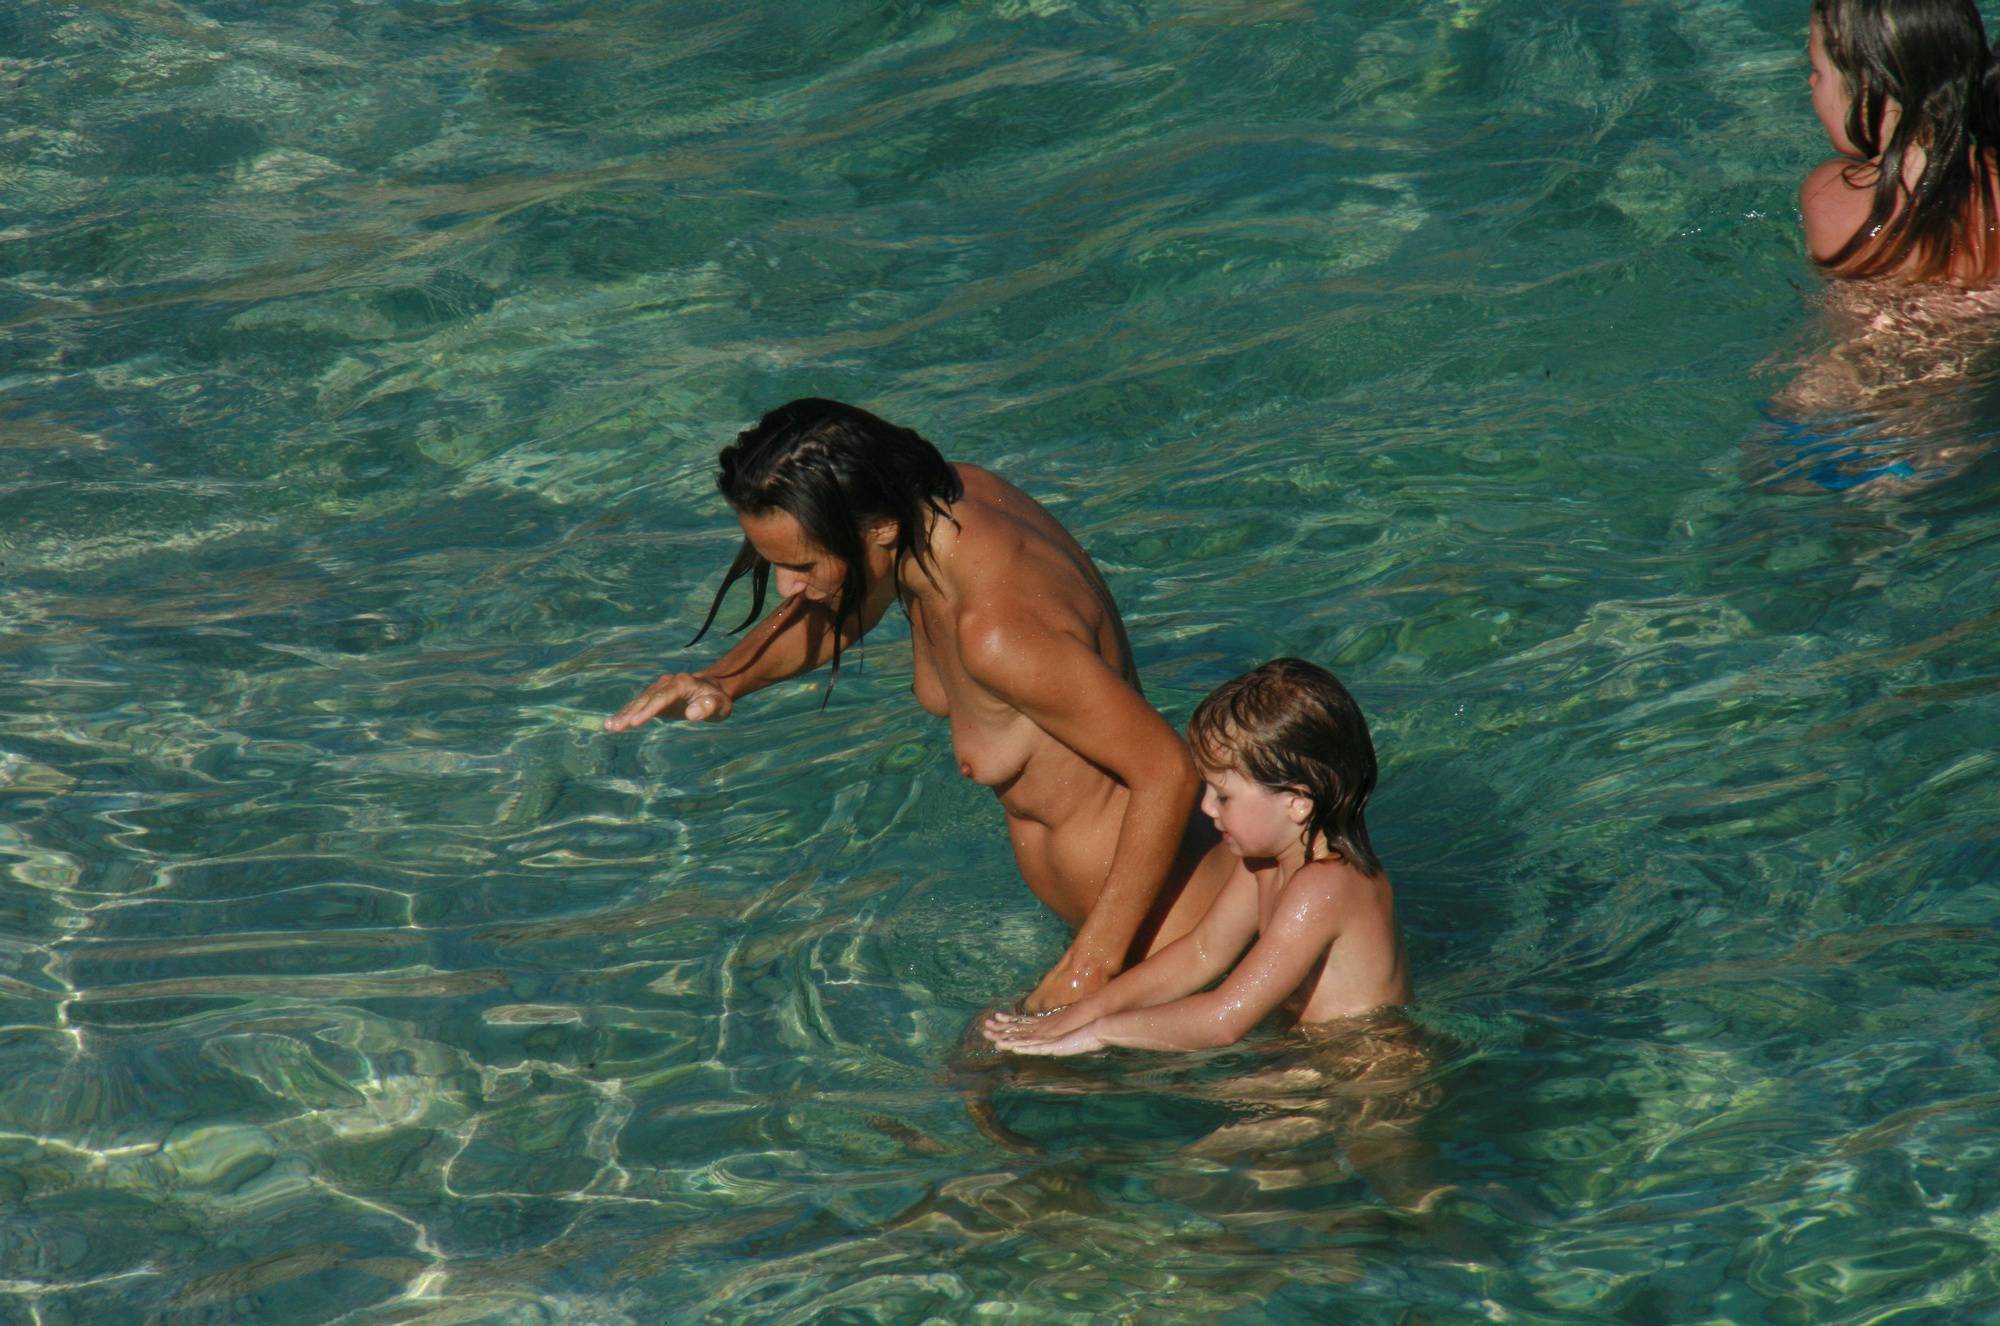 Nudist Pictures Mother and Daughter Beach - 2